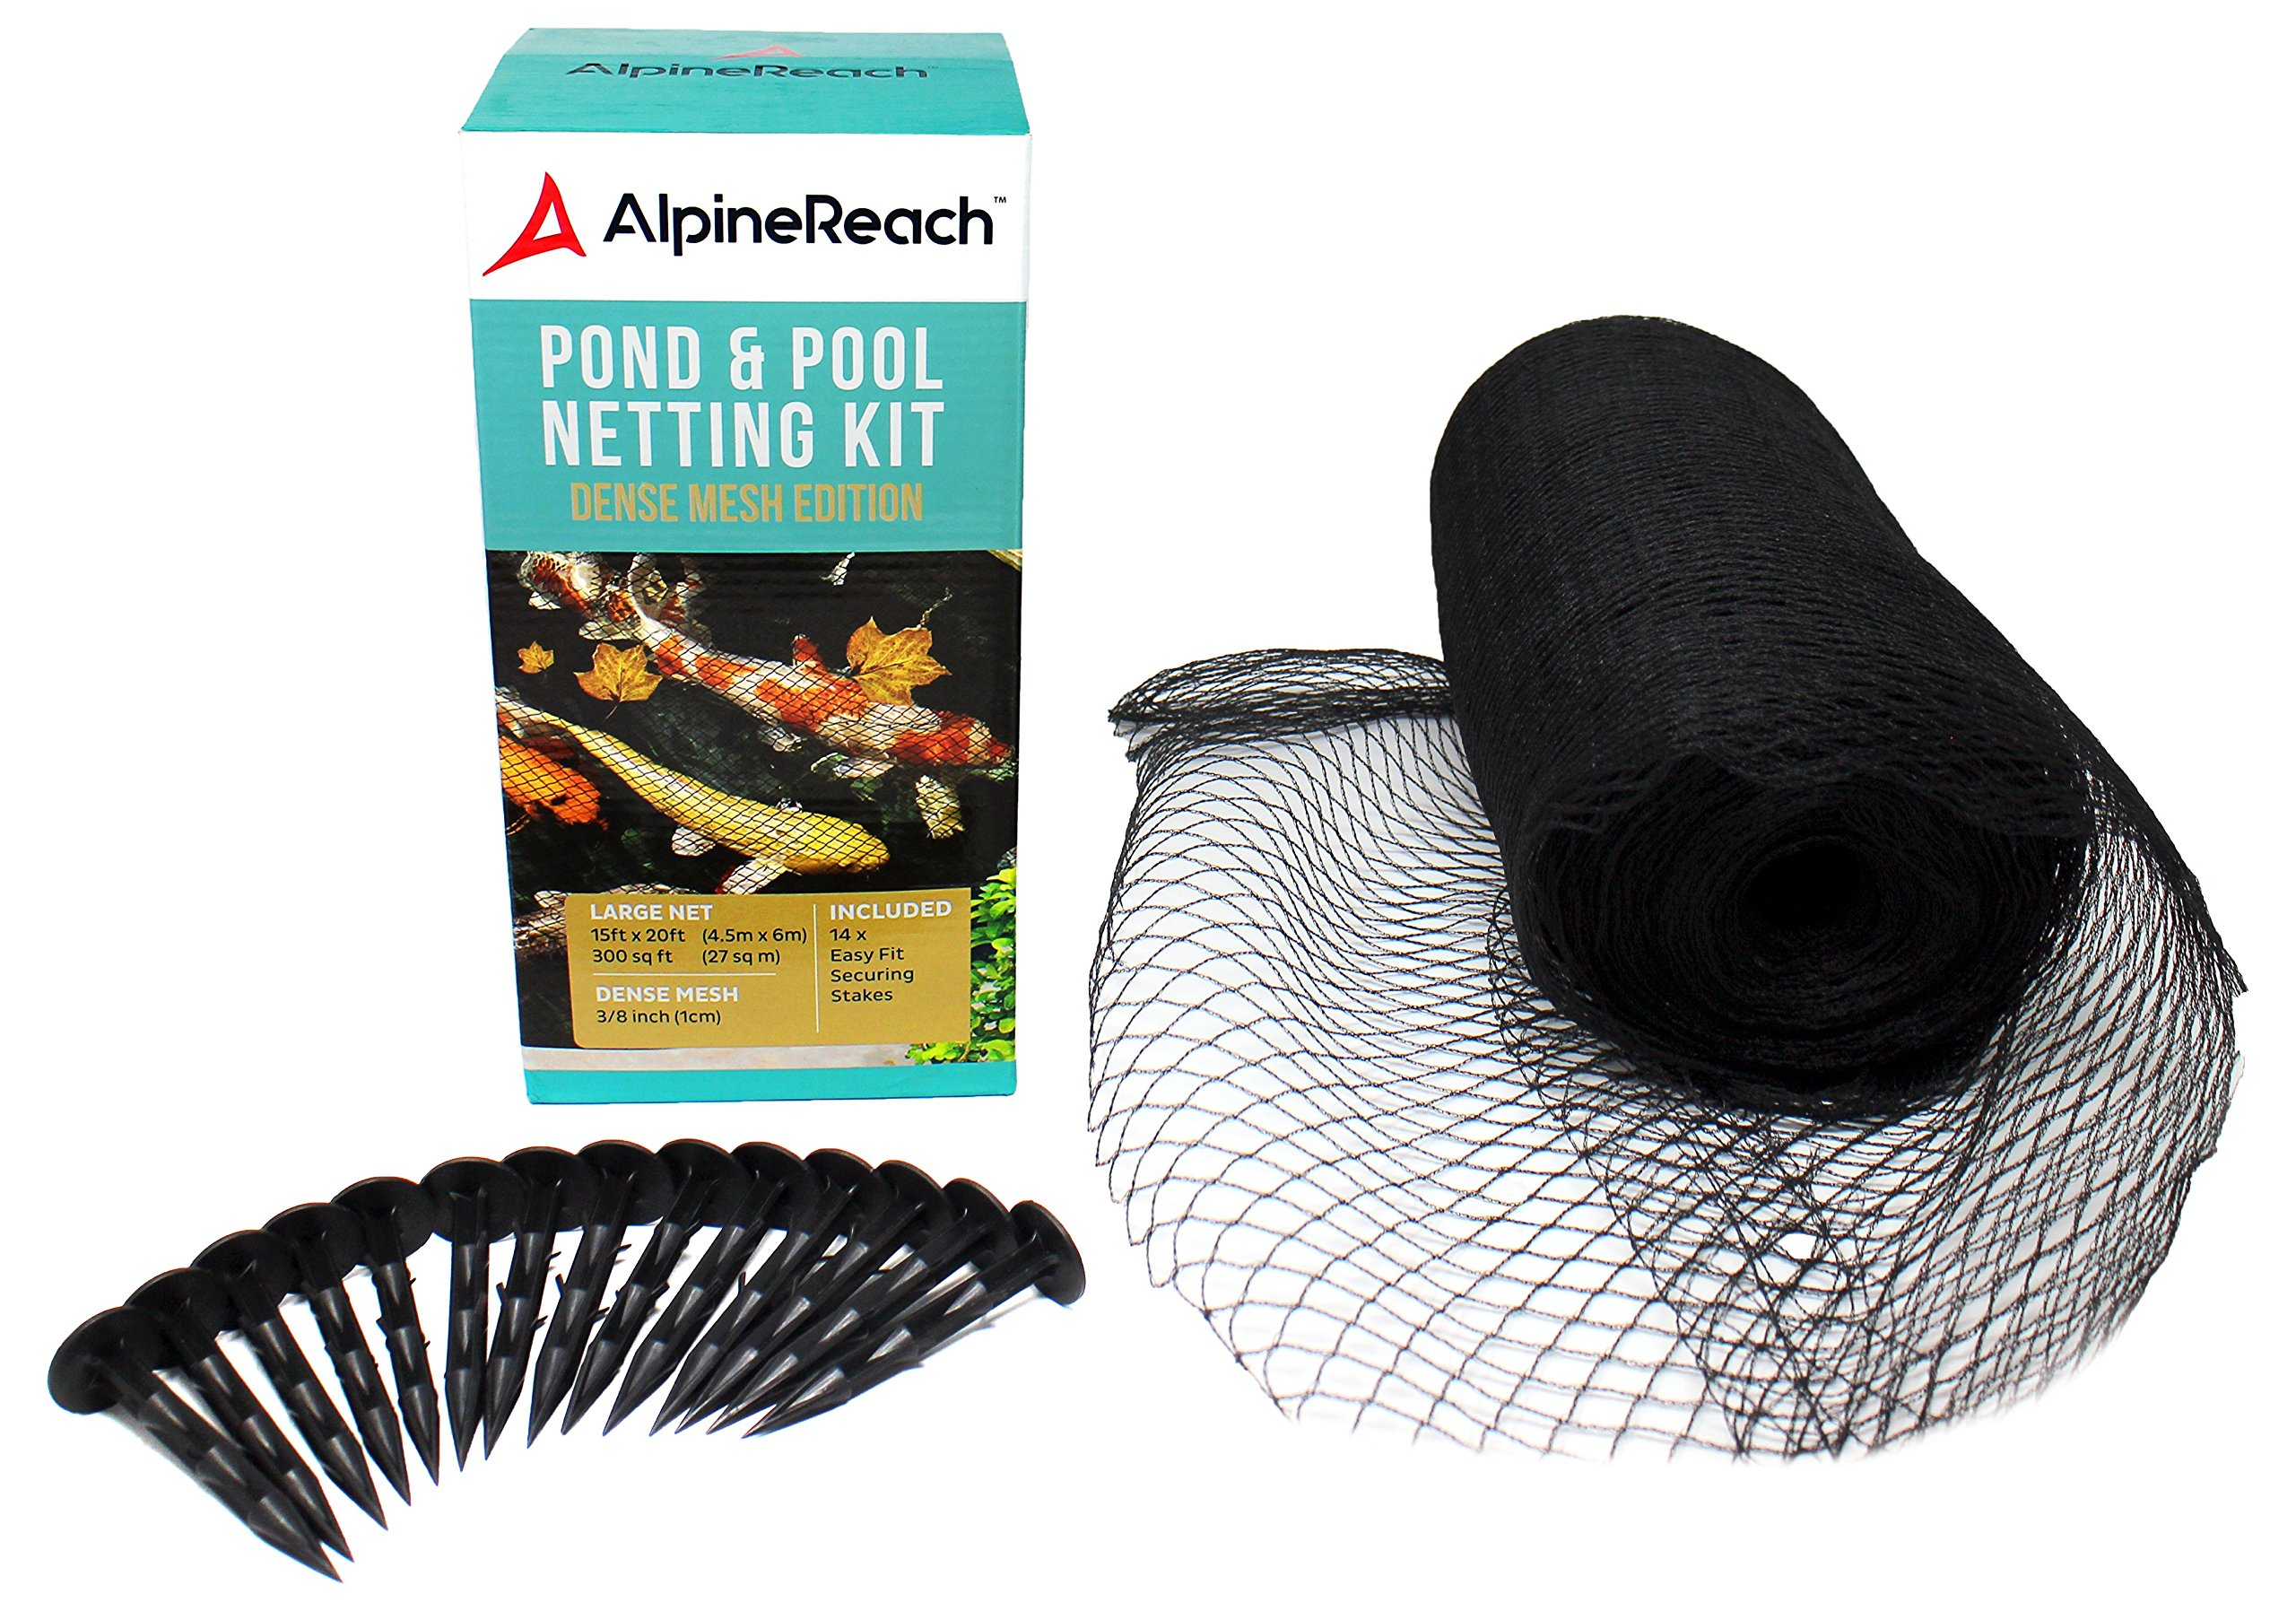 AlpineReach Pond & Pool Netting 14 x 14 ft - Dense Fine Mesh Heavy Duty Net - Cover for Leaves - Protects Koi Fish from Birds, Blue Heron, Cats, Predators UV Protection All Accessories Stakes Included